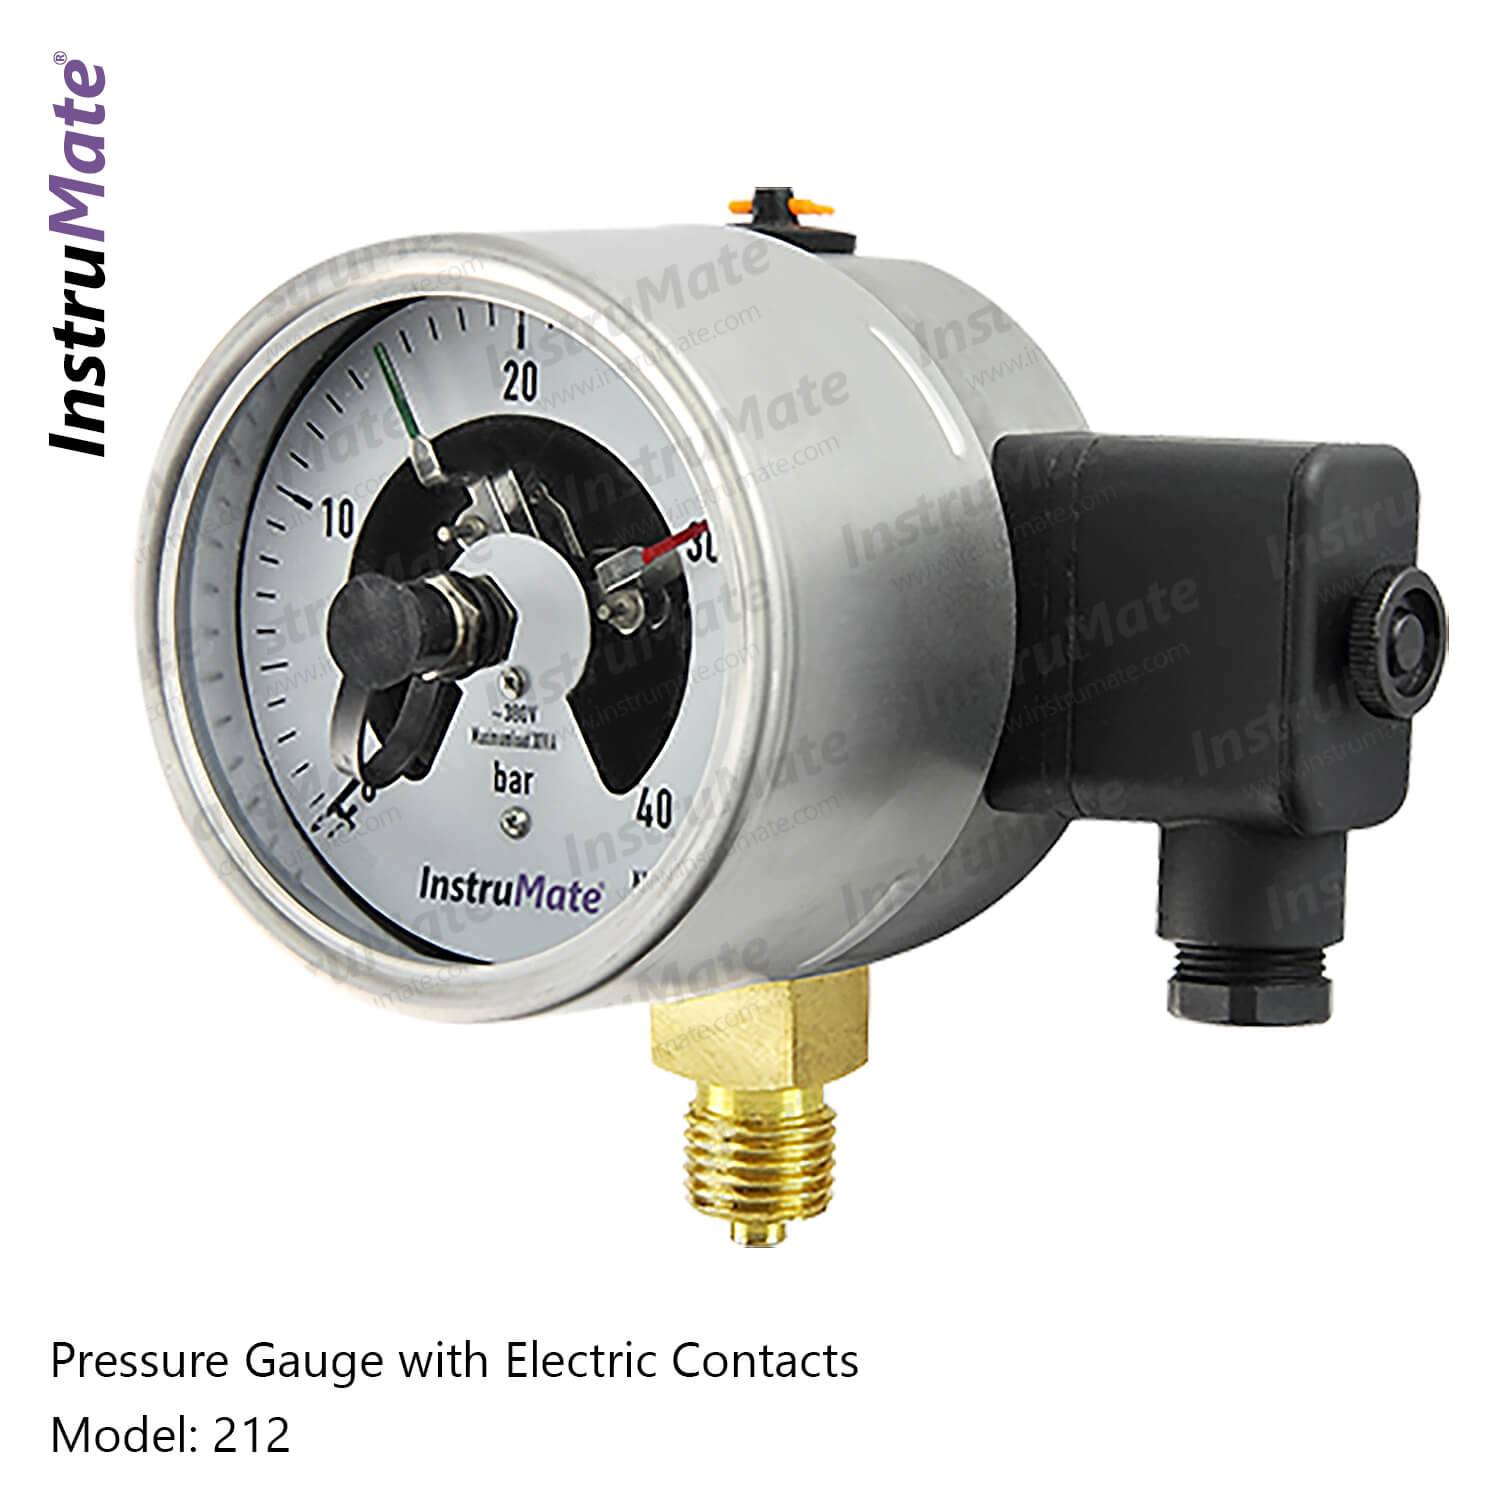 Electric Contact Pressure Gauge - 212 - Instrumate